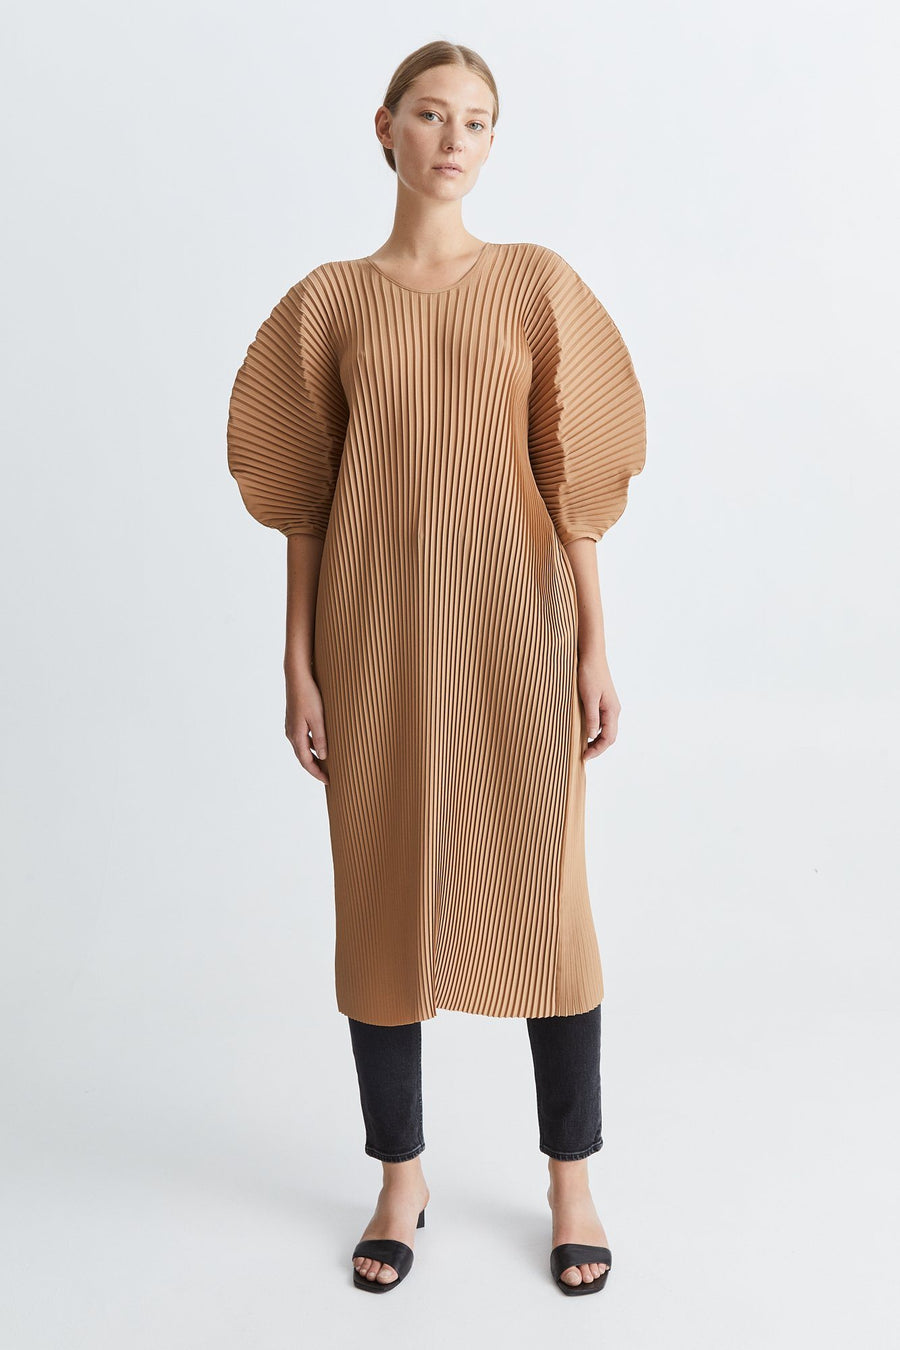 ISADORA DRESS - TERRACOTTA Dress Stylein